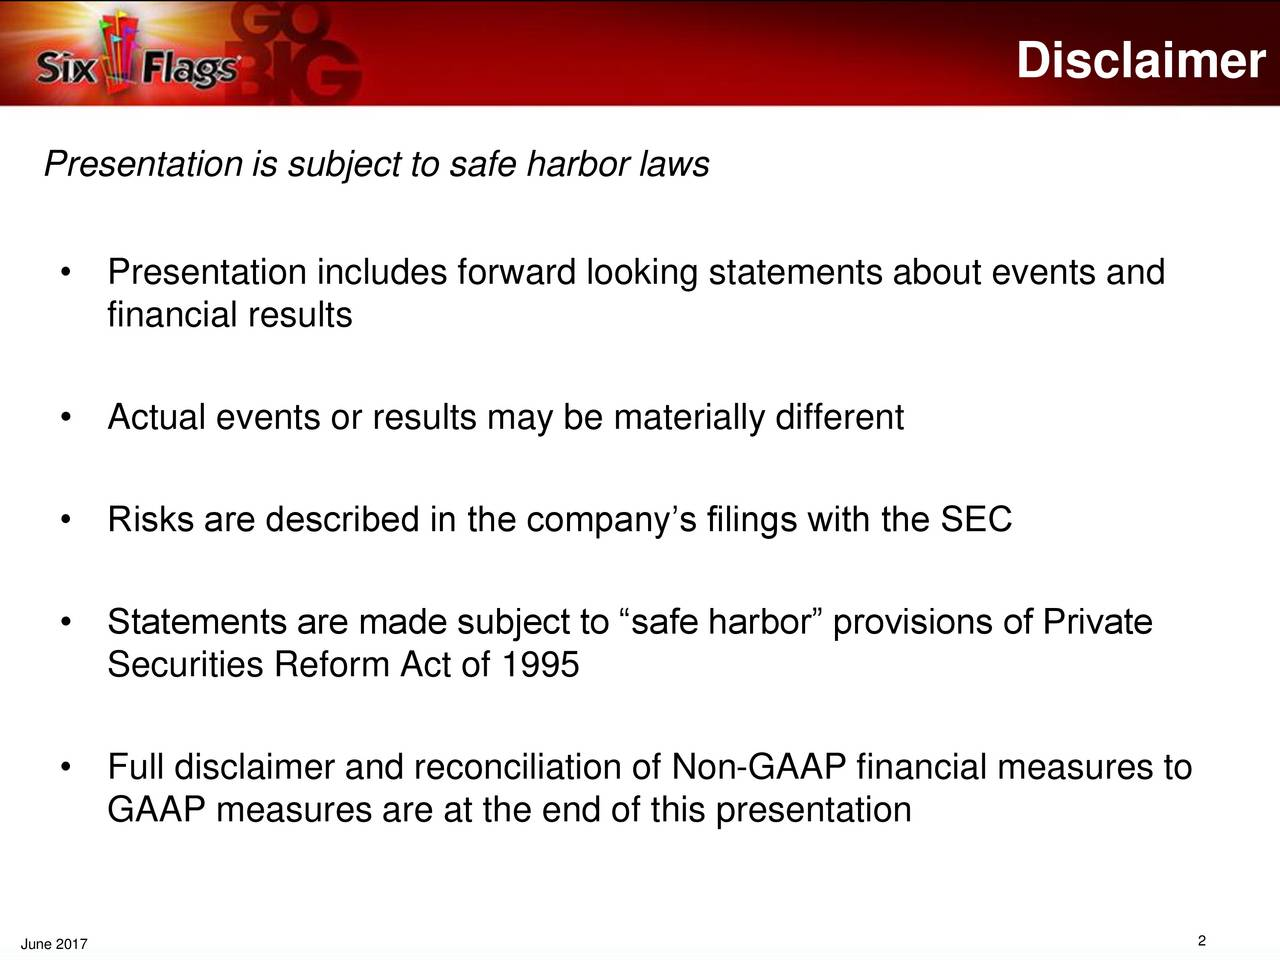 Presentation is subject to safe harbor laws Presentation includes forward looking statements about events and financial results Actual events or results may be materially different Risks are described in the companys filings with the SEC Statements are made subject to safe harbor provisions of Private Securities Reform Act of 1995 Full disclaimer and reconciliation of Non-GAAP financial measures to GAAP measures are at the end of this presentation